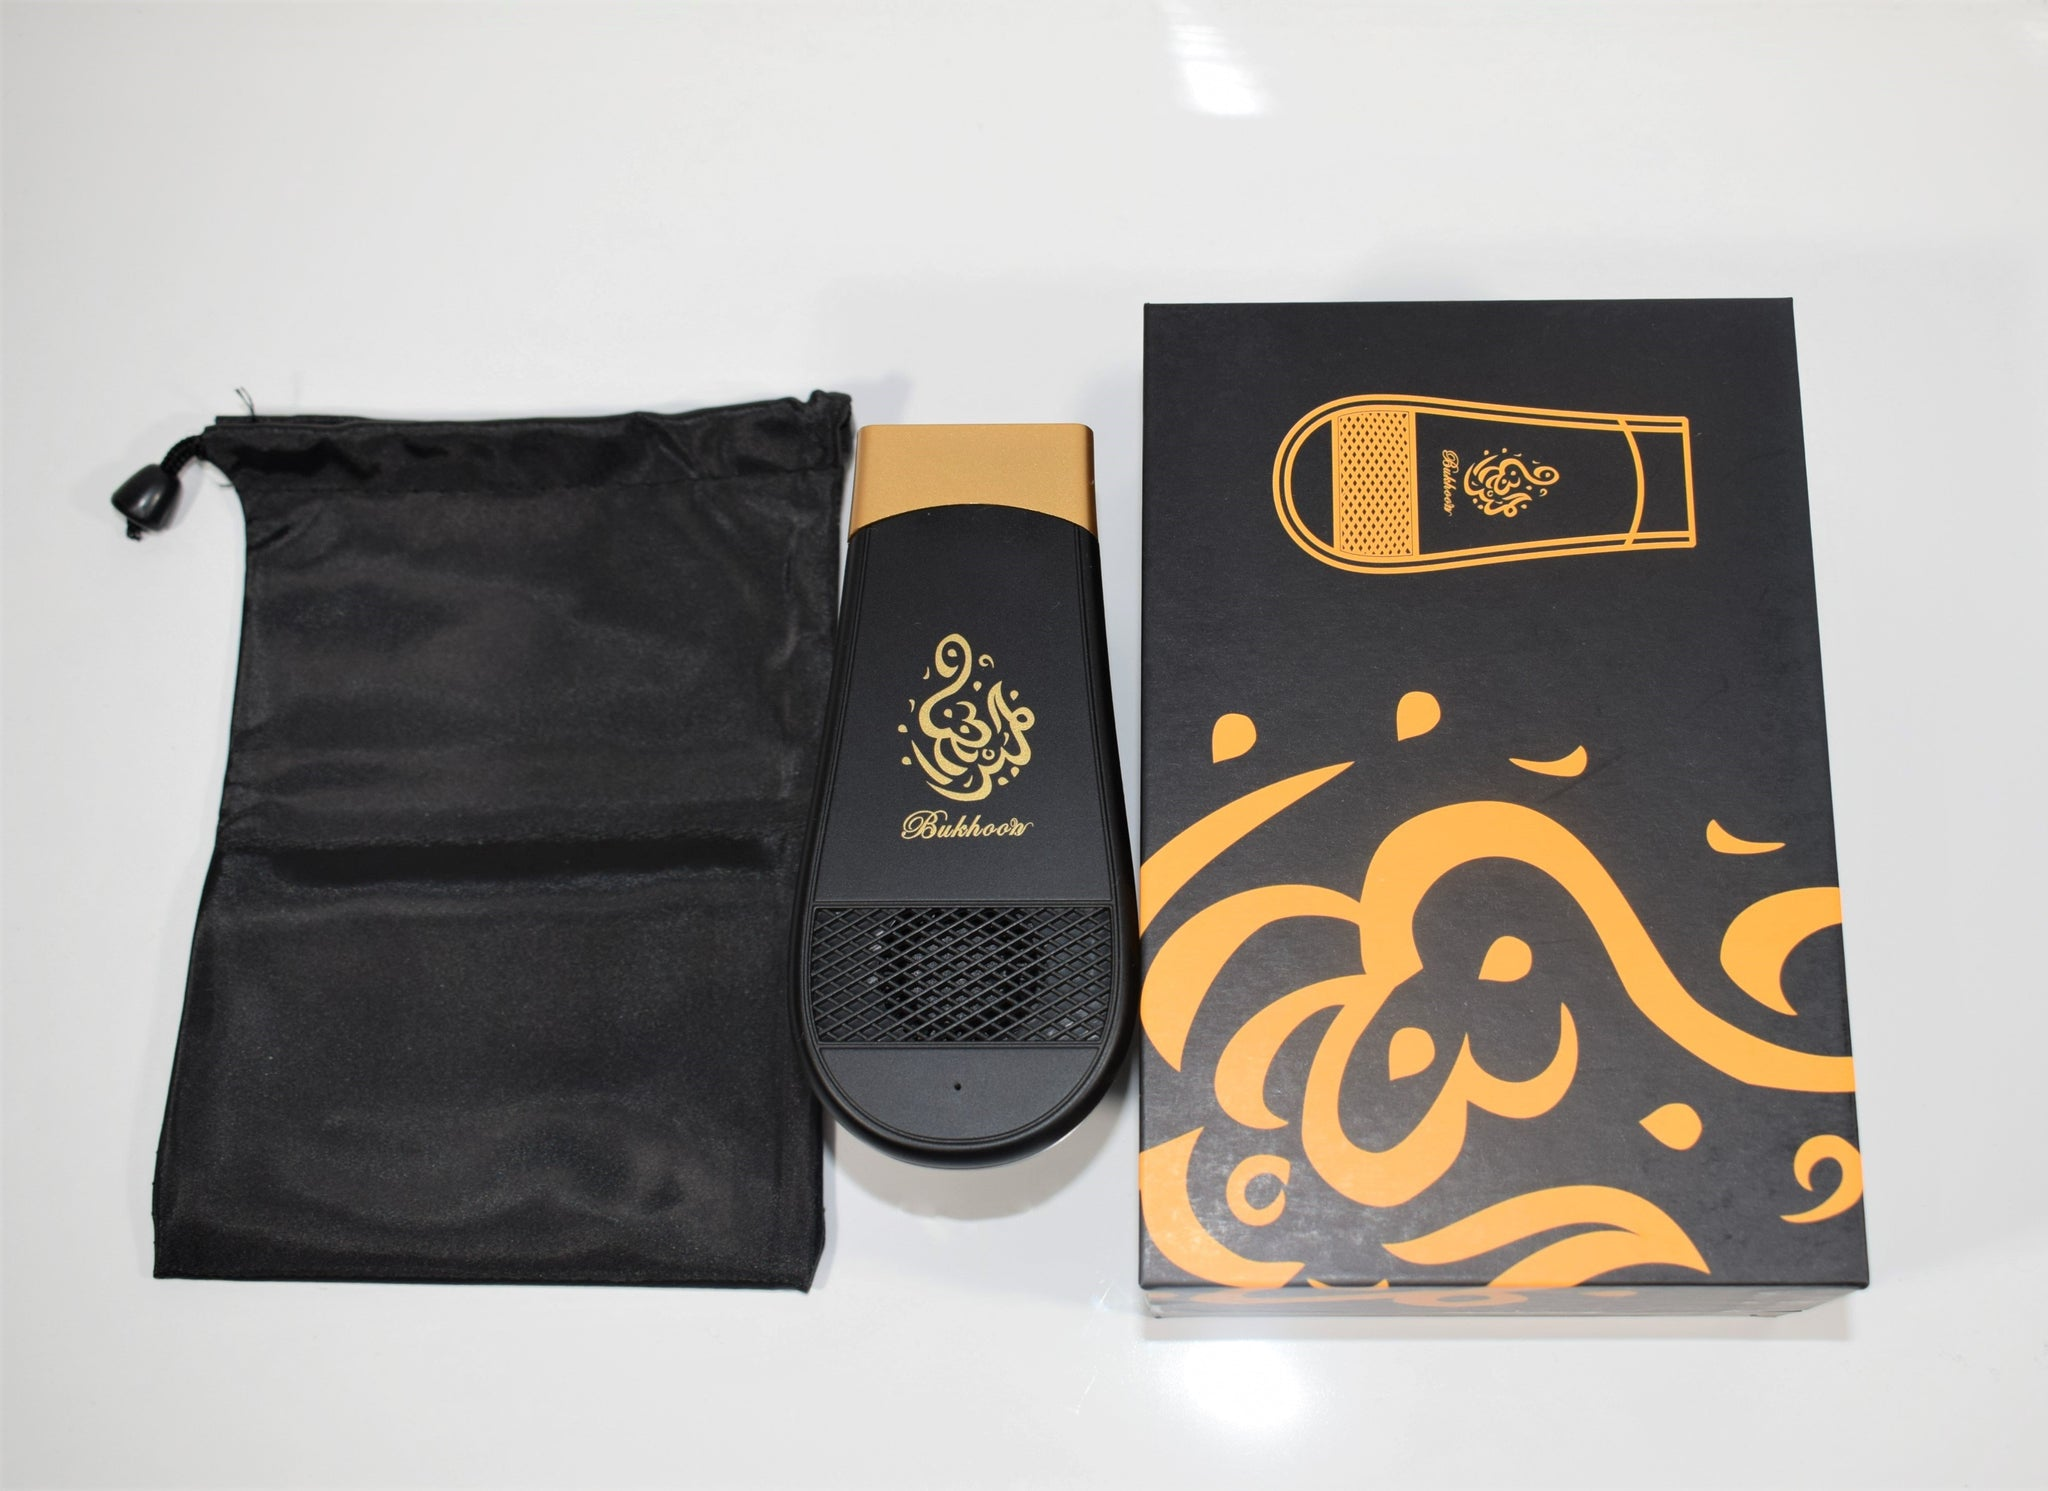 Luxury Portable Modern Day Bakhoor Burner Gift Set - Mrsunnah Grooming Co